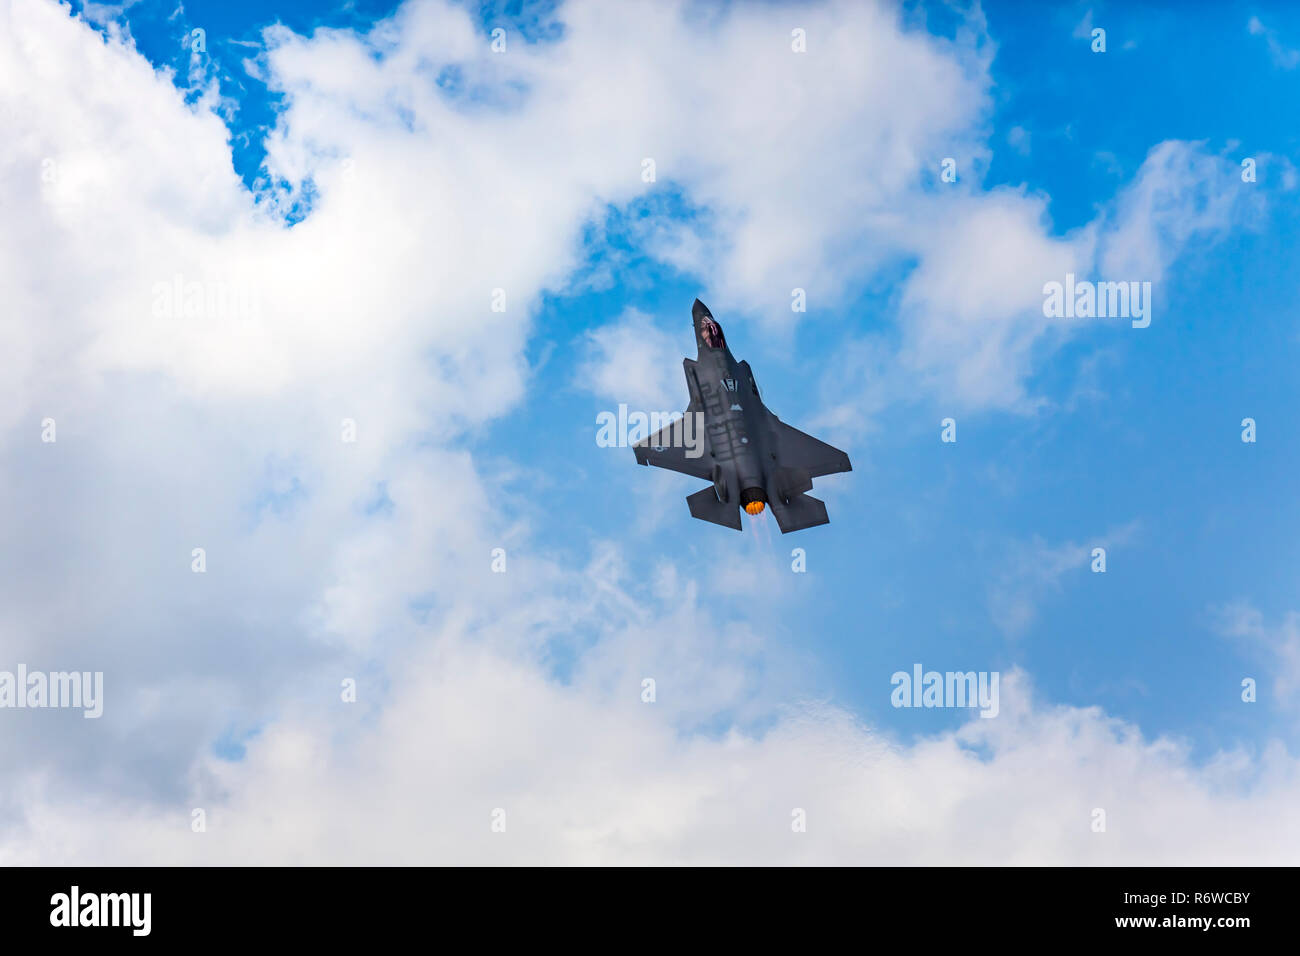 The Lockheed Martin F-35A fighter jet in flight at the 2017 Airshow in Duluth, Minnesota, USA. - Stock Image